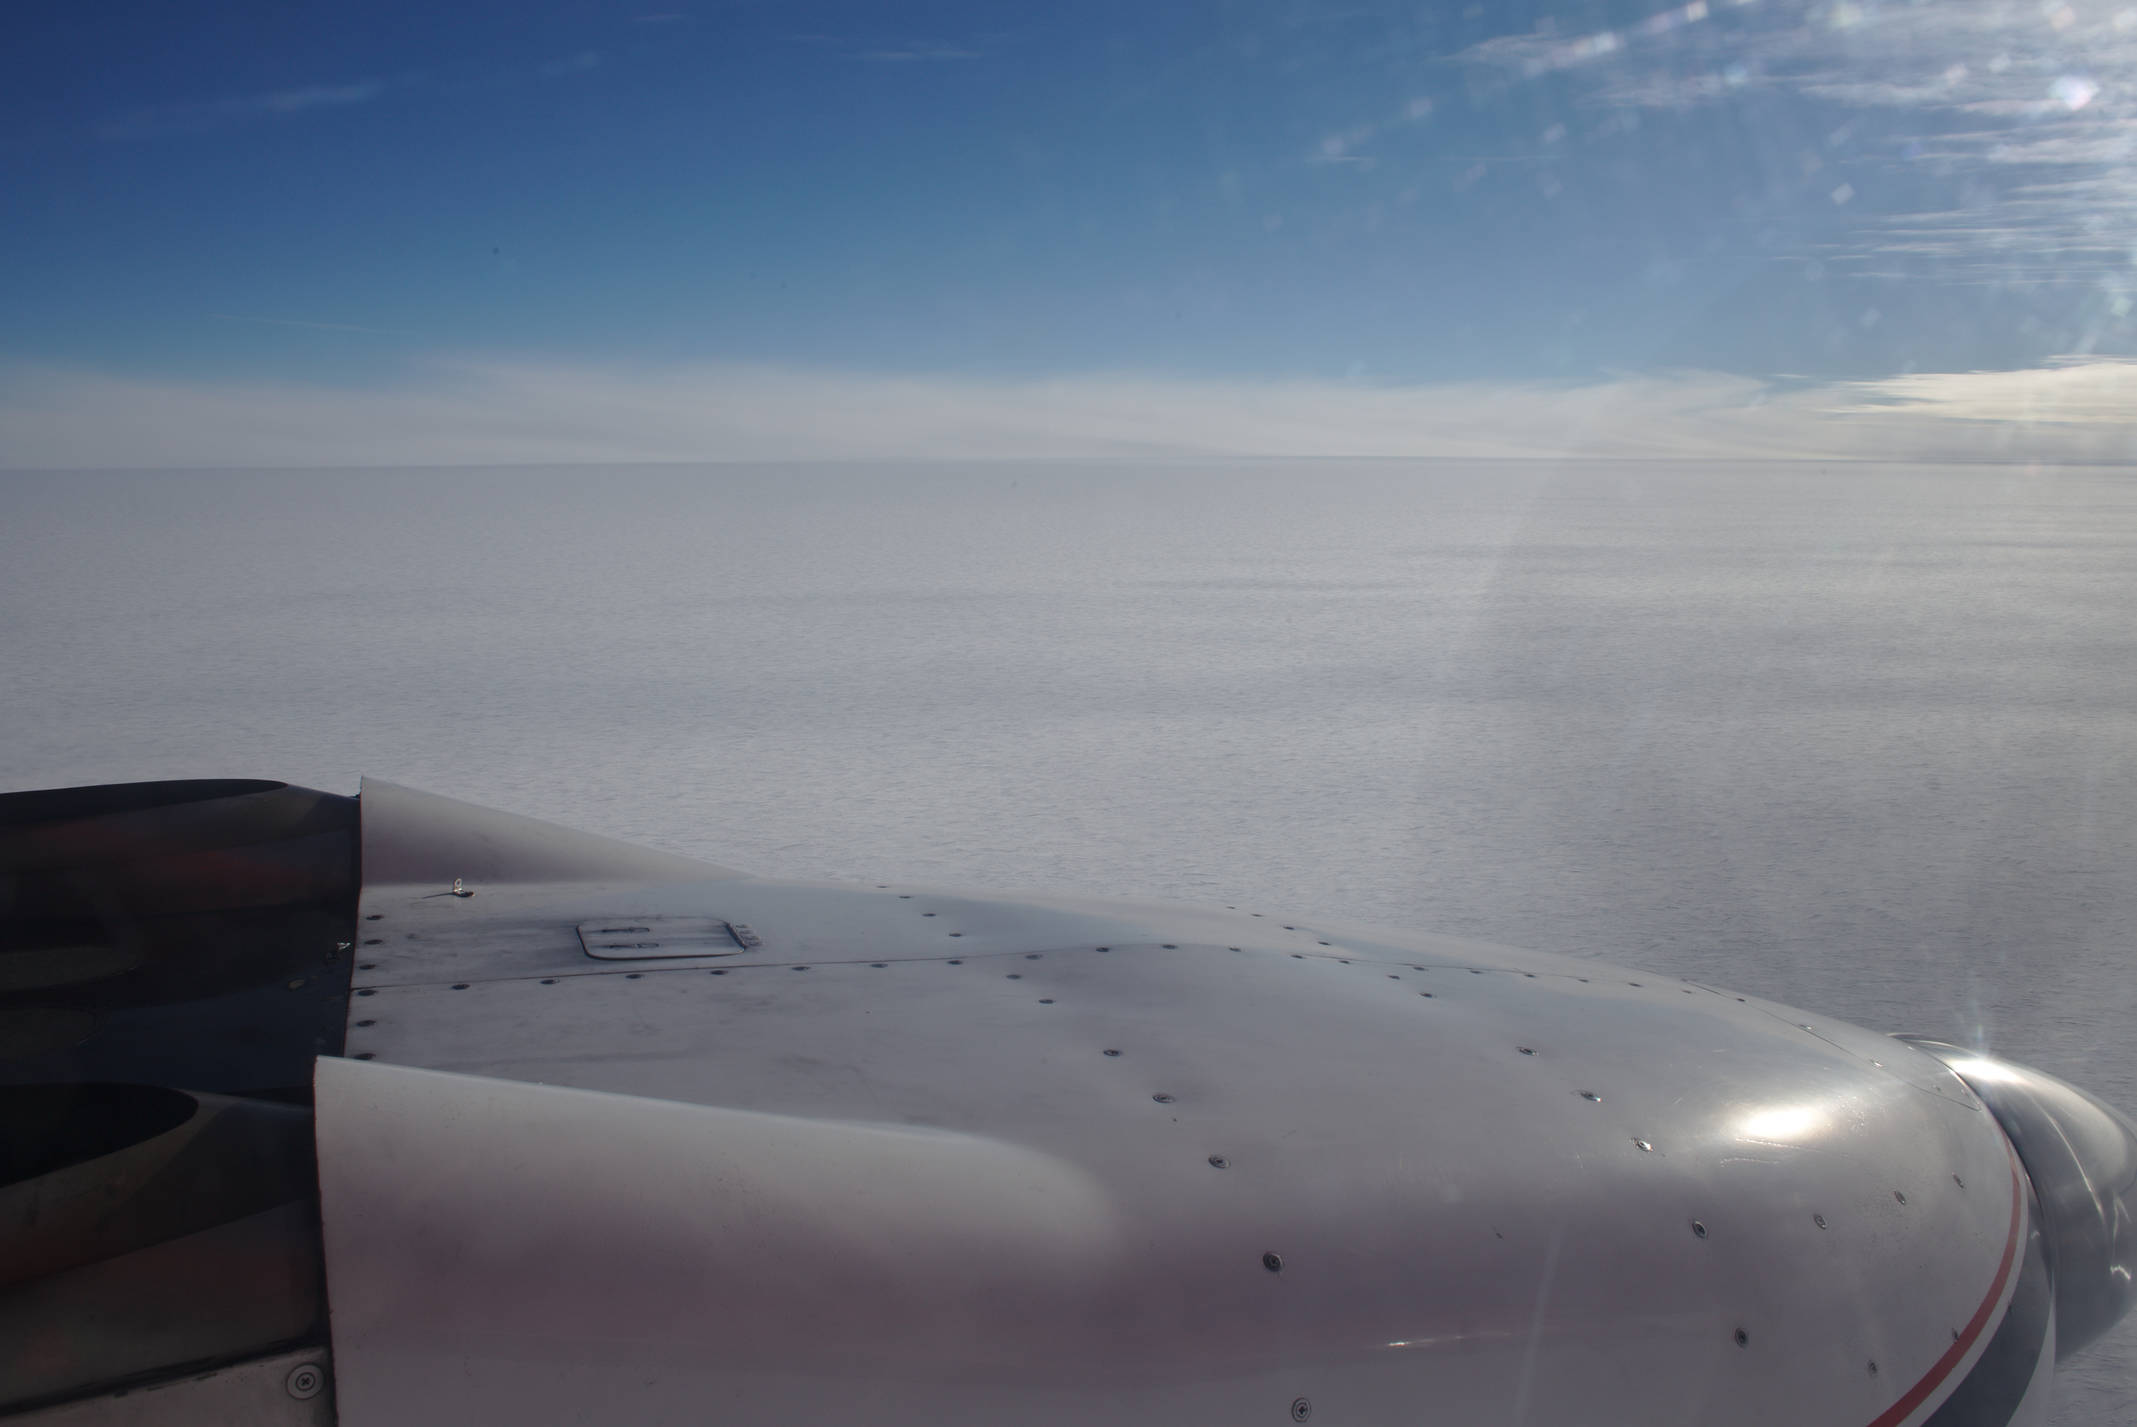 The Antarctic plateau. Nothing but flat and white for the next 120 minutes of flight time